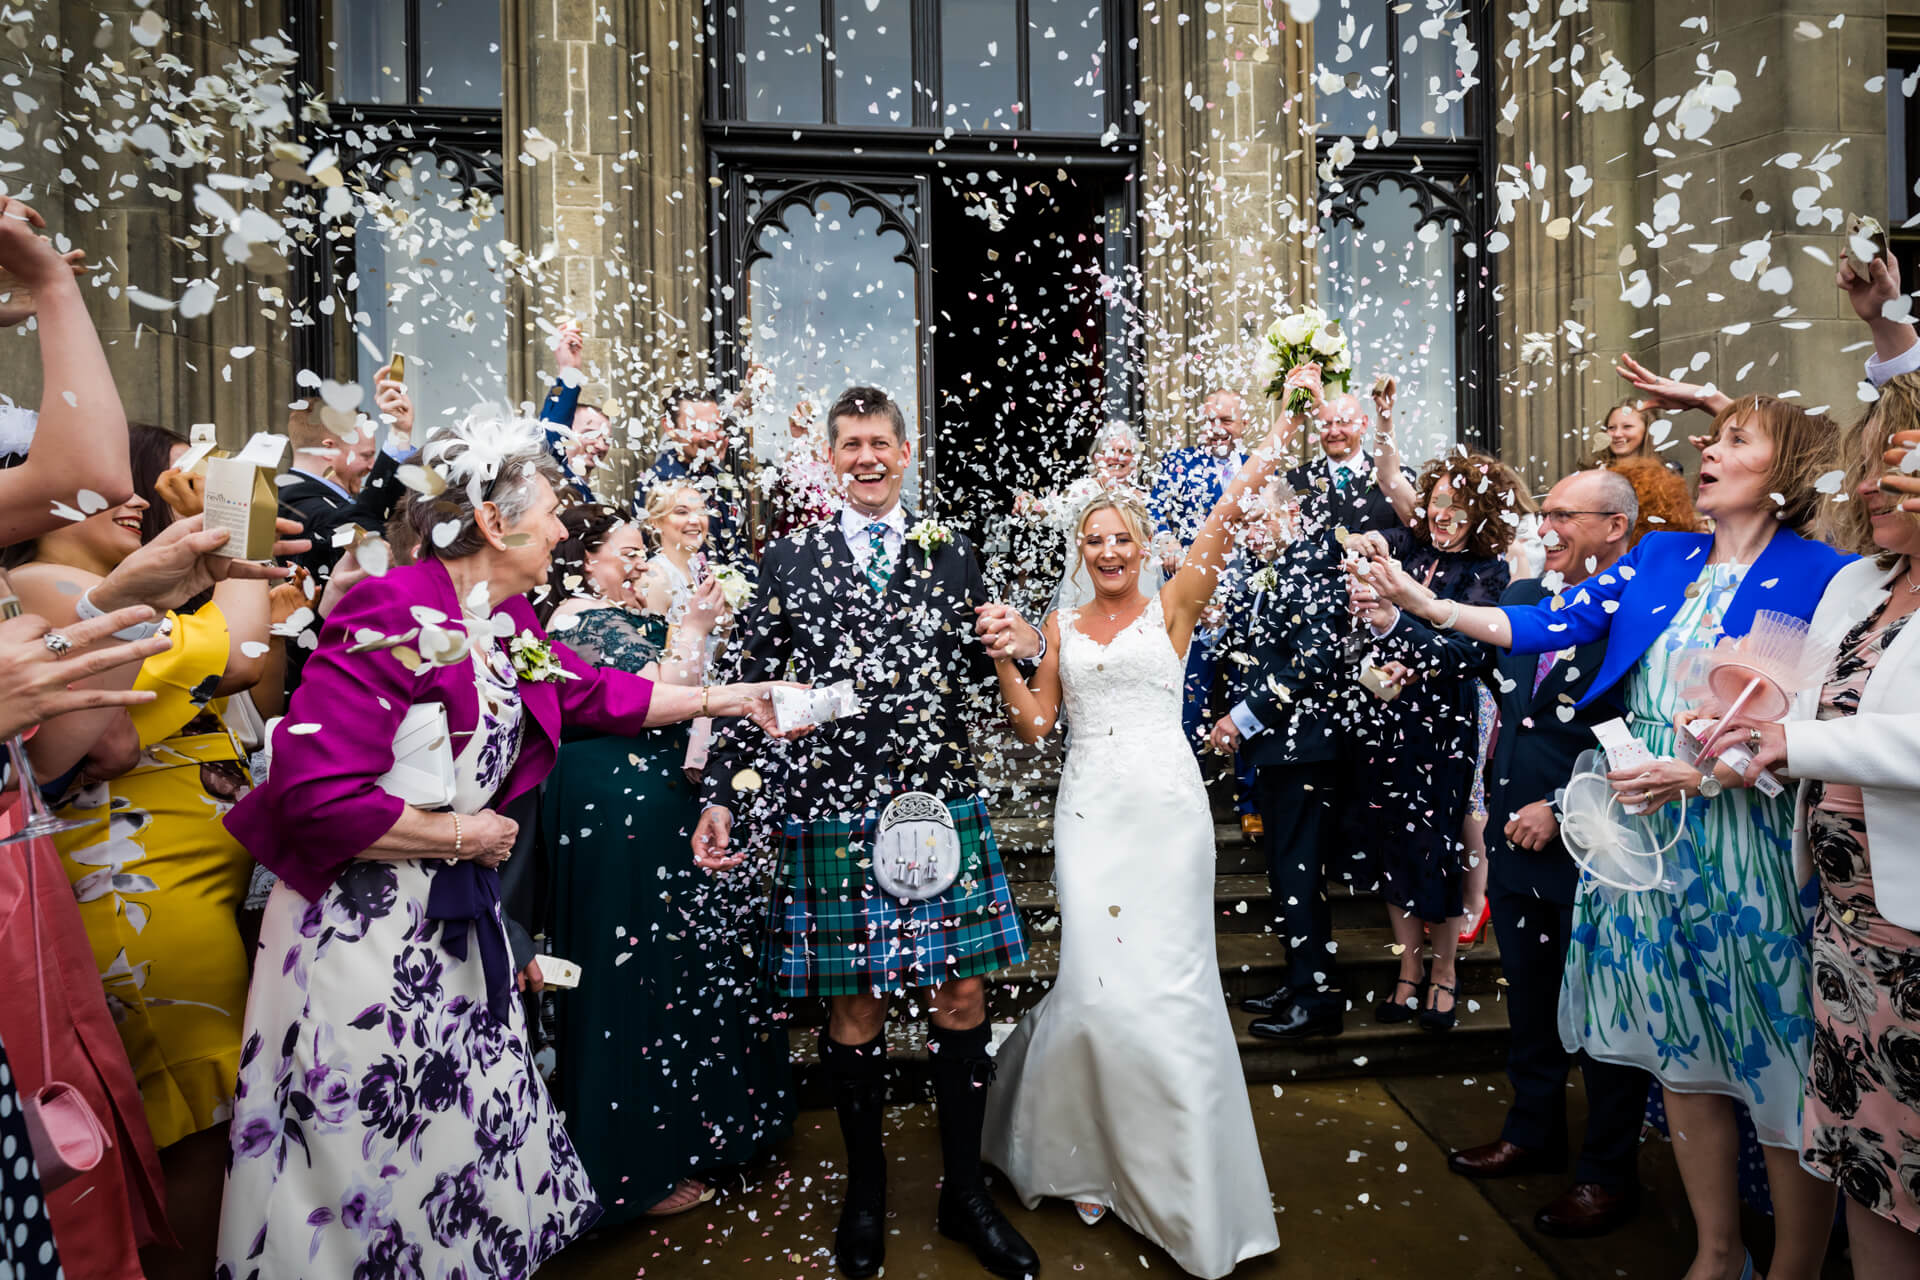 wedding couple under a dense shower of confetti at Allerton Castle